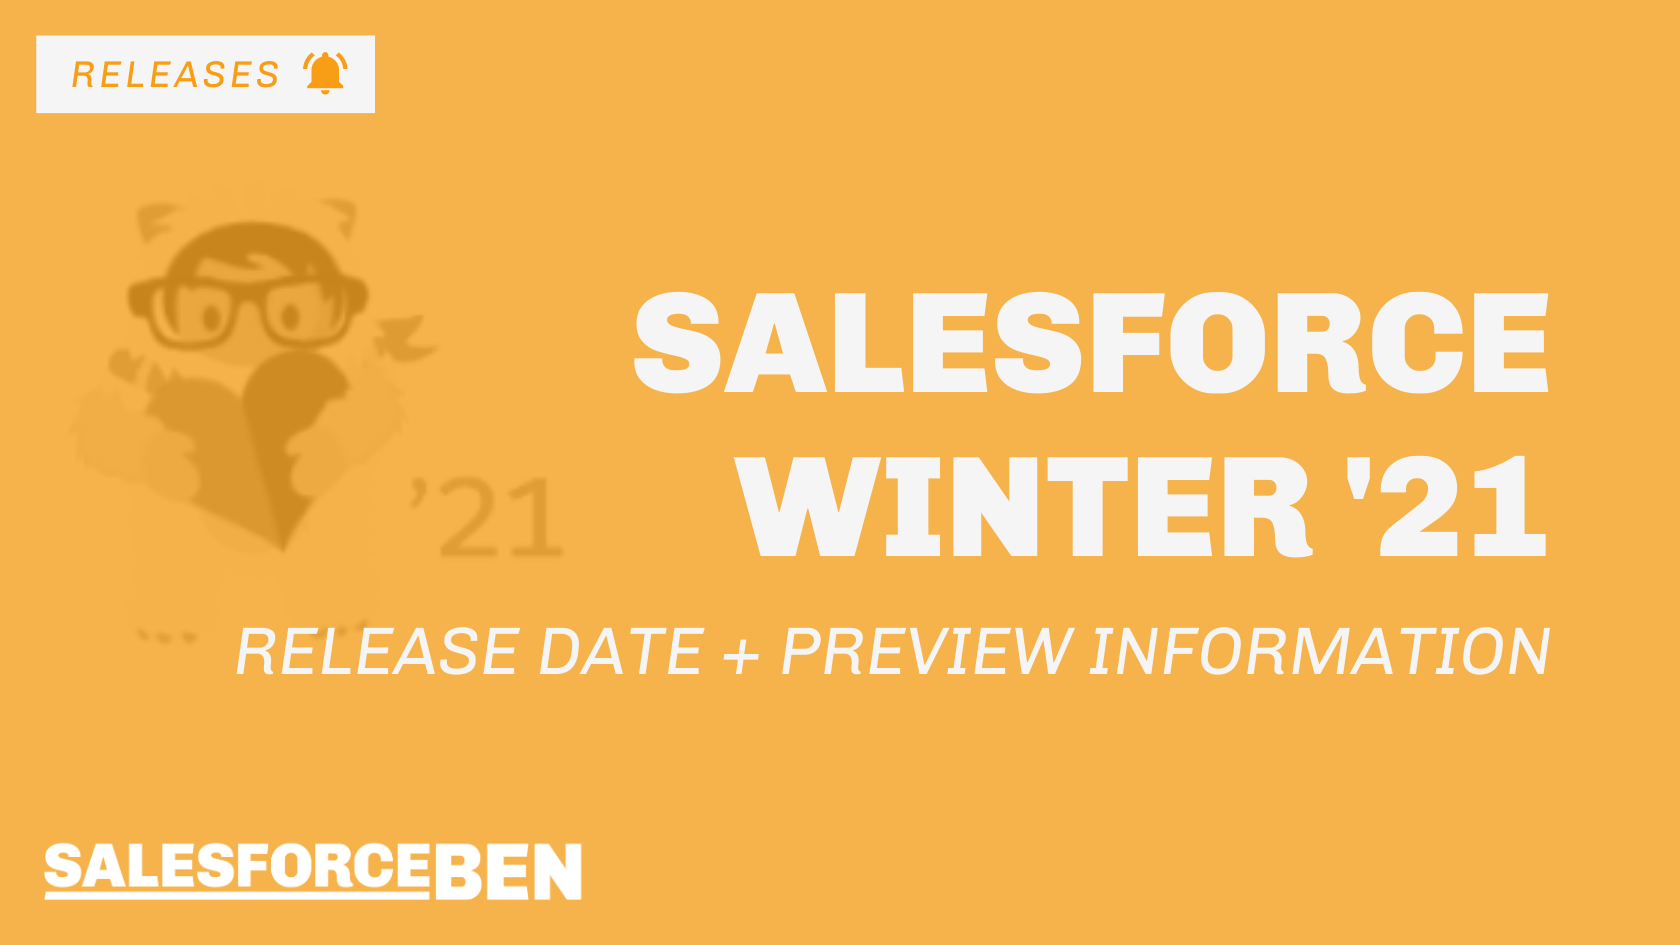 Salesforce Winter '21 Release Date + Preview Information